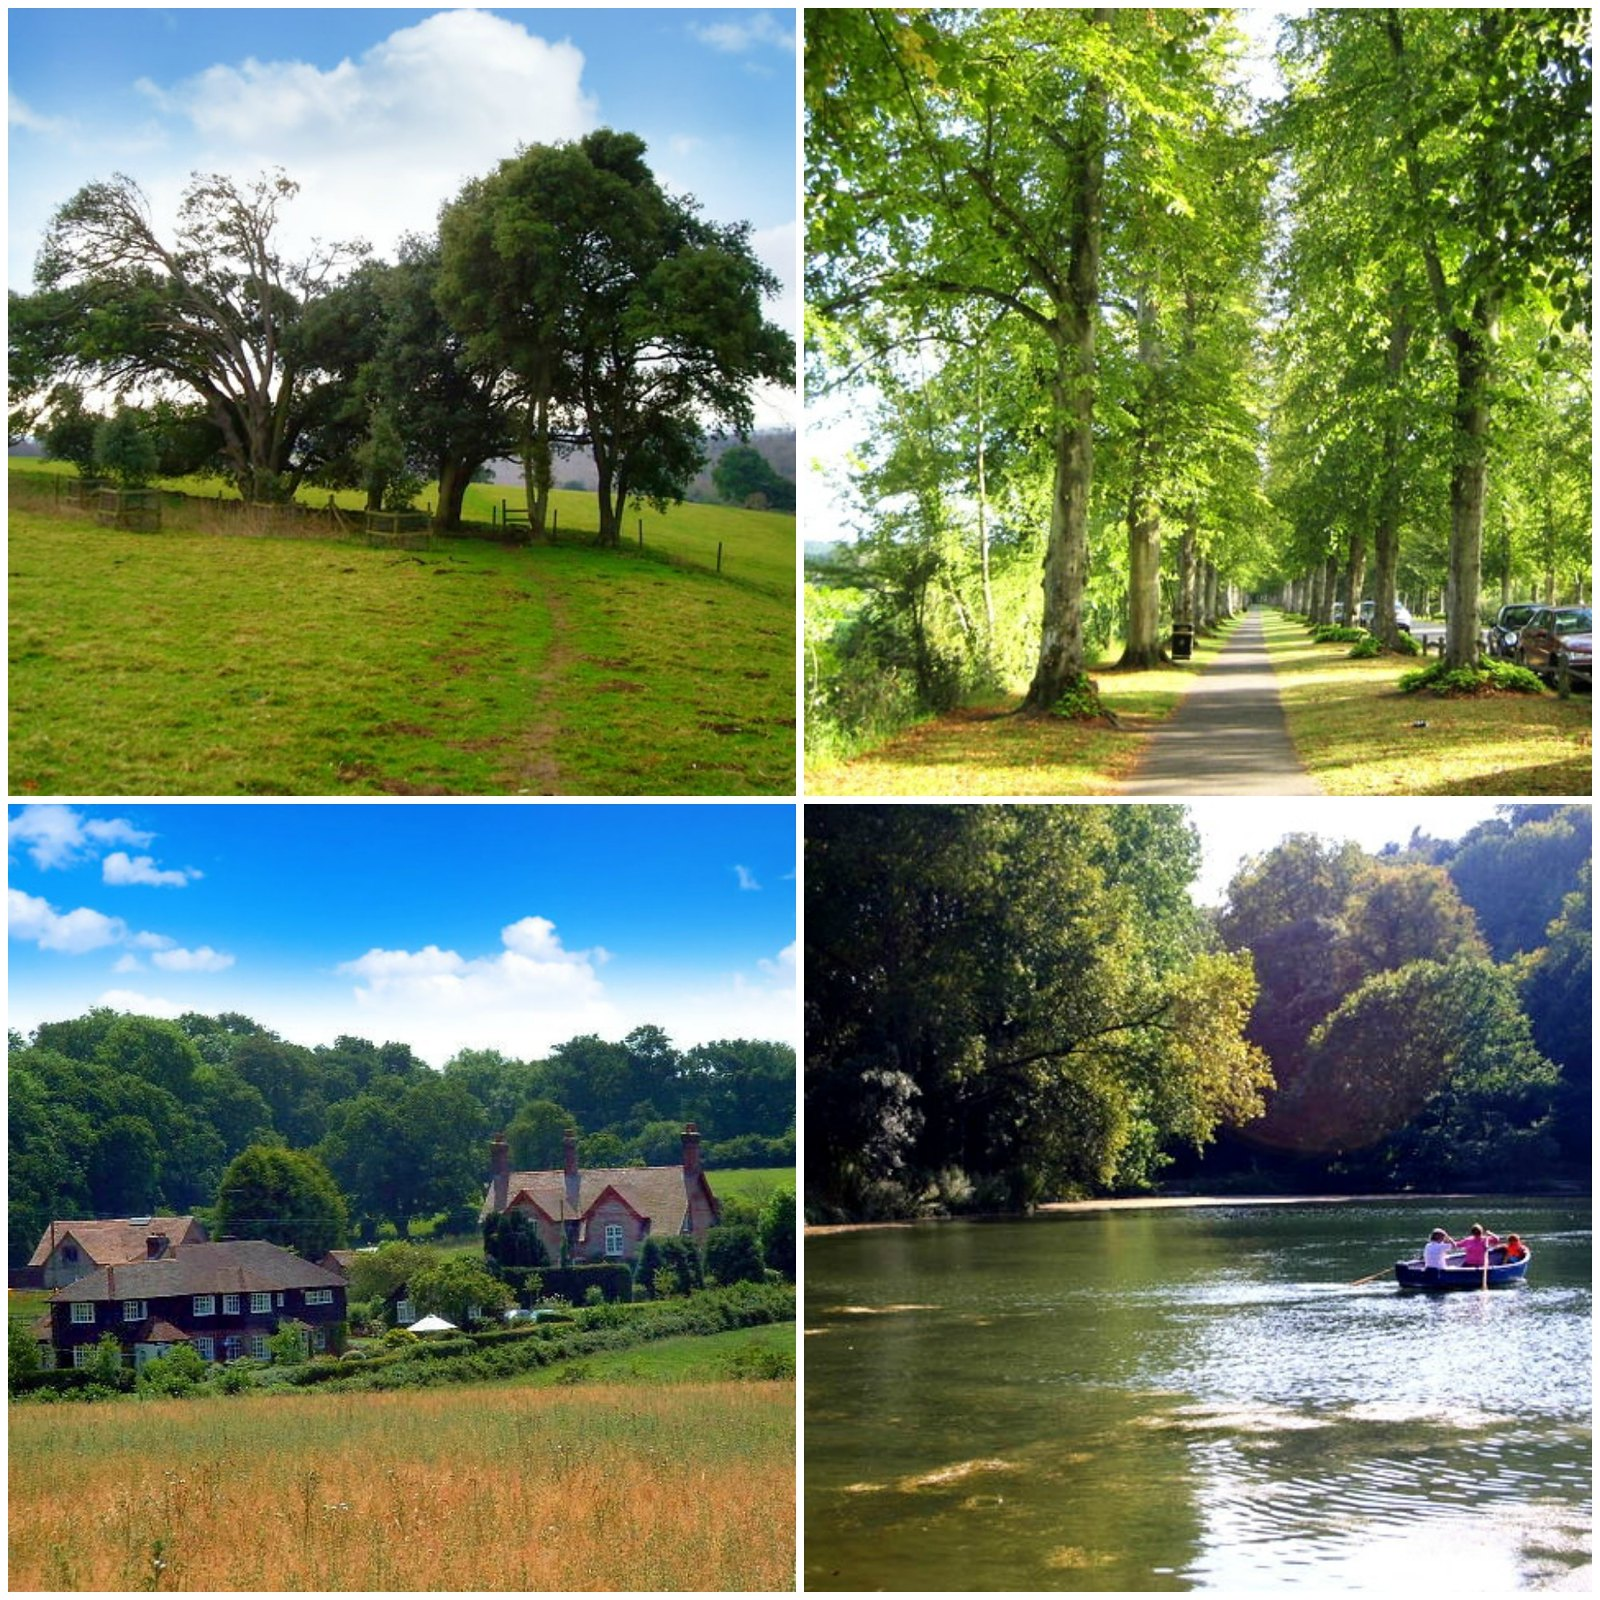 Top right clockwise. Monarch's Way. (Credit Peter Holmes); Mill Road lined with lime trees on both sides (Credit Nigel Cox); Houses at Crossbush (Credit Chris Shaw); Row boats out on Swanbourne Lake (Credit Shaun Ferguson).jpg